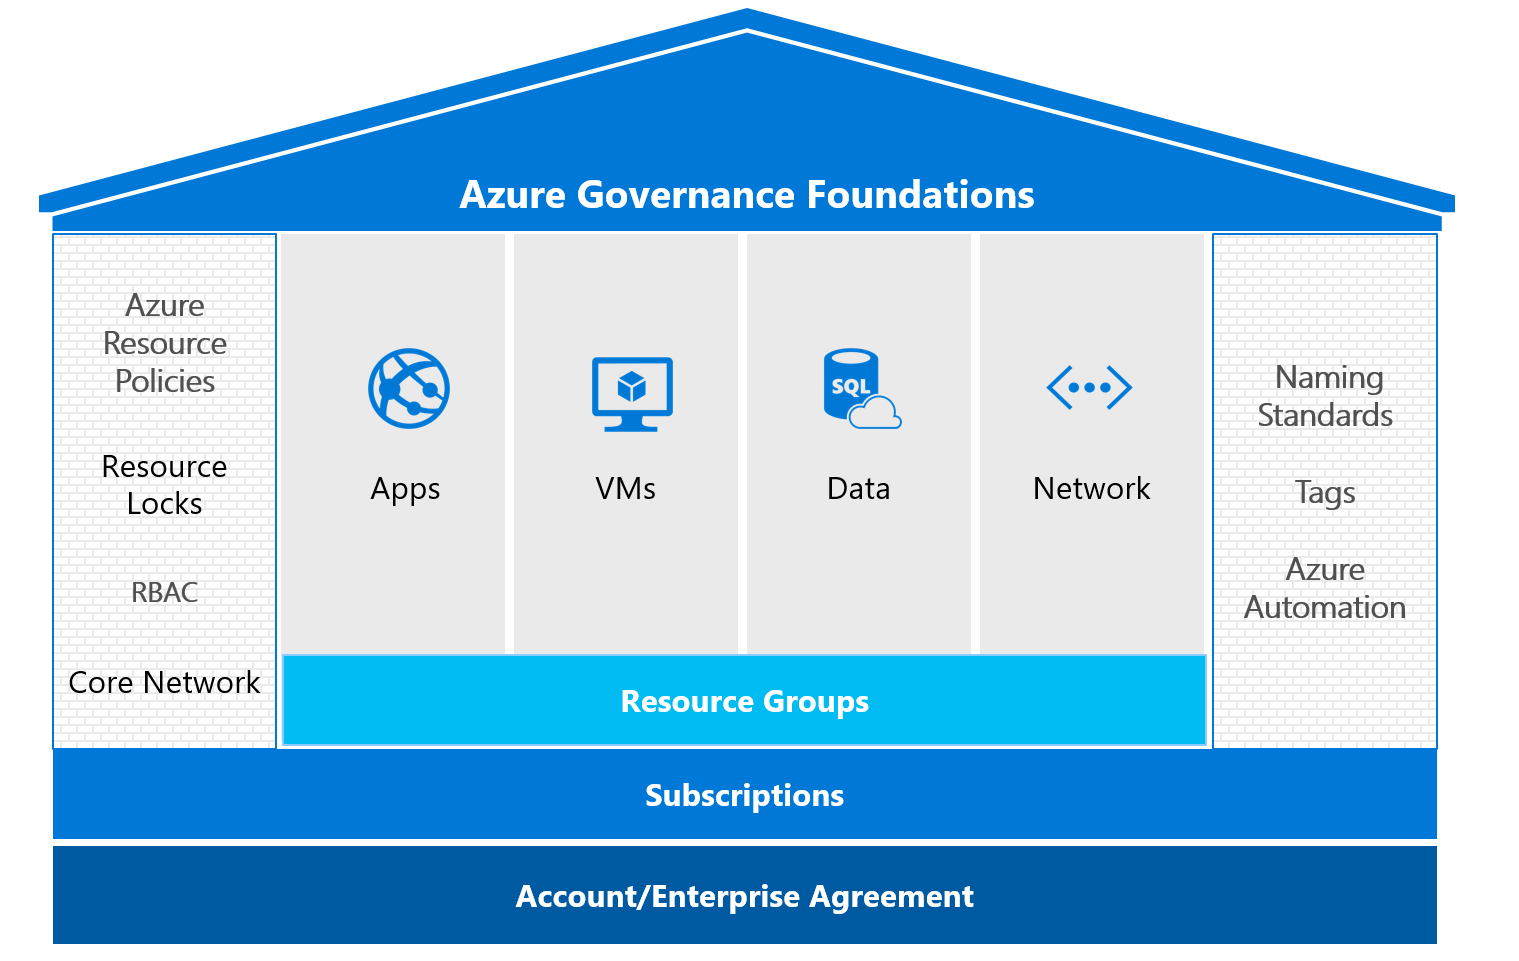 Azure Goverance Foundations